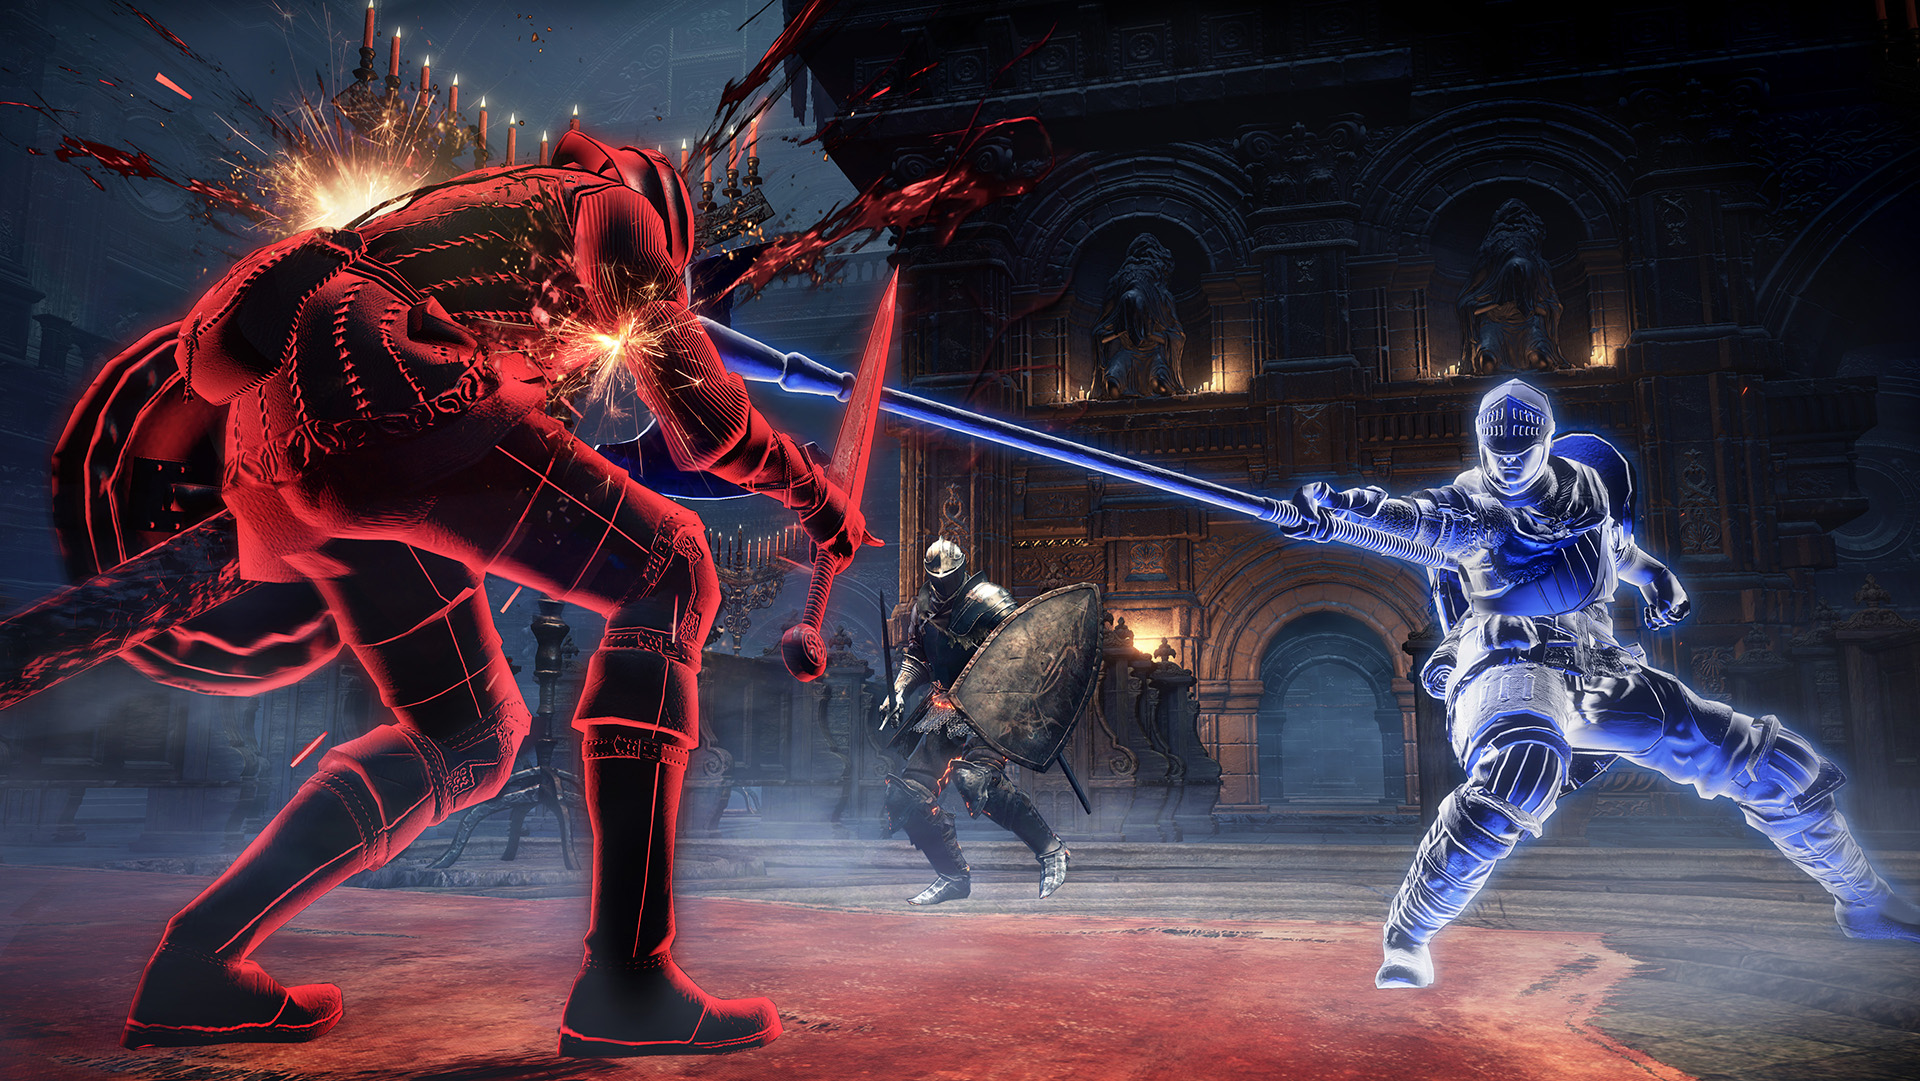 Dark Souls 3: everything we know from playing the first four hours | Polygon